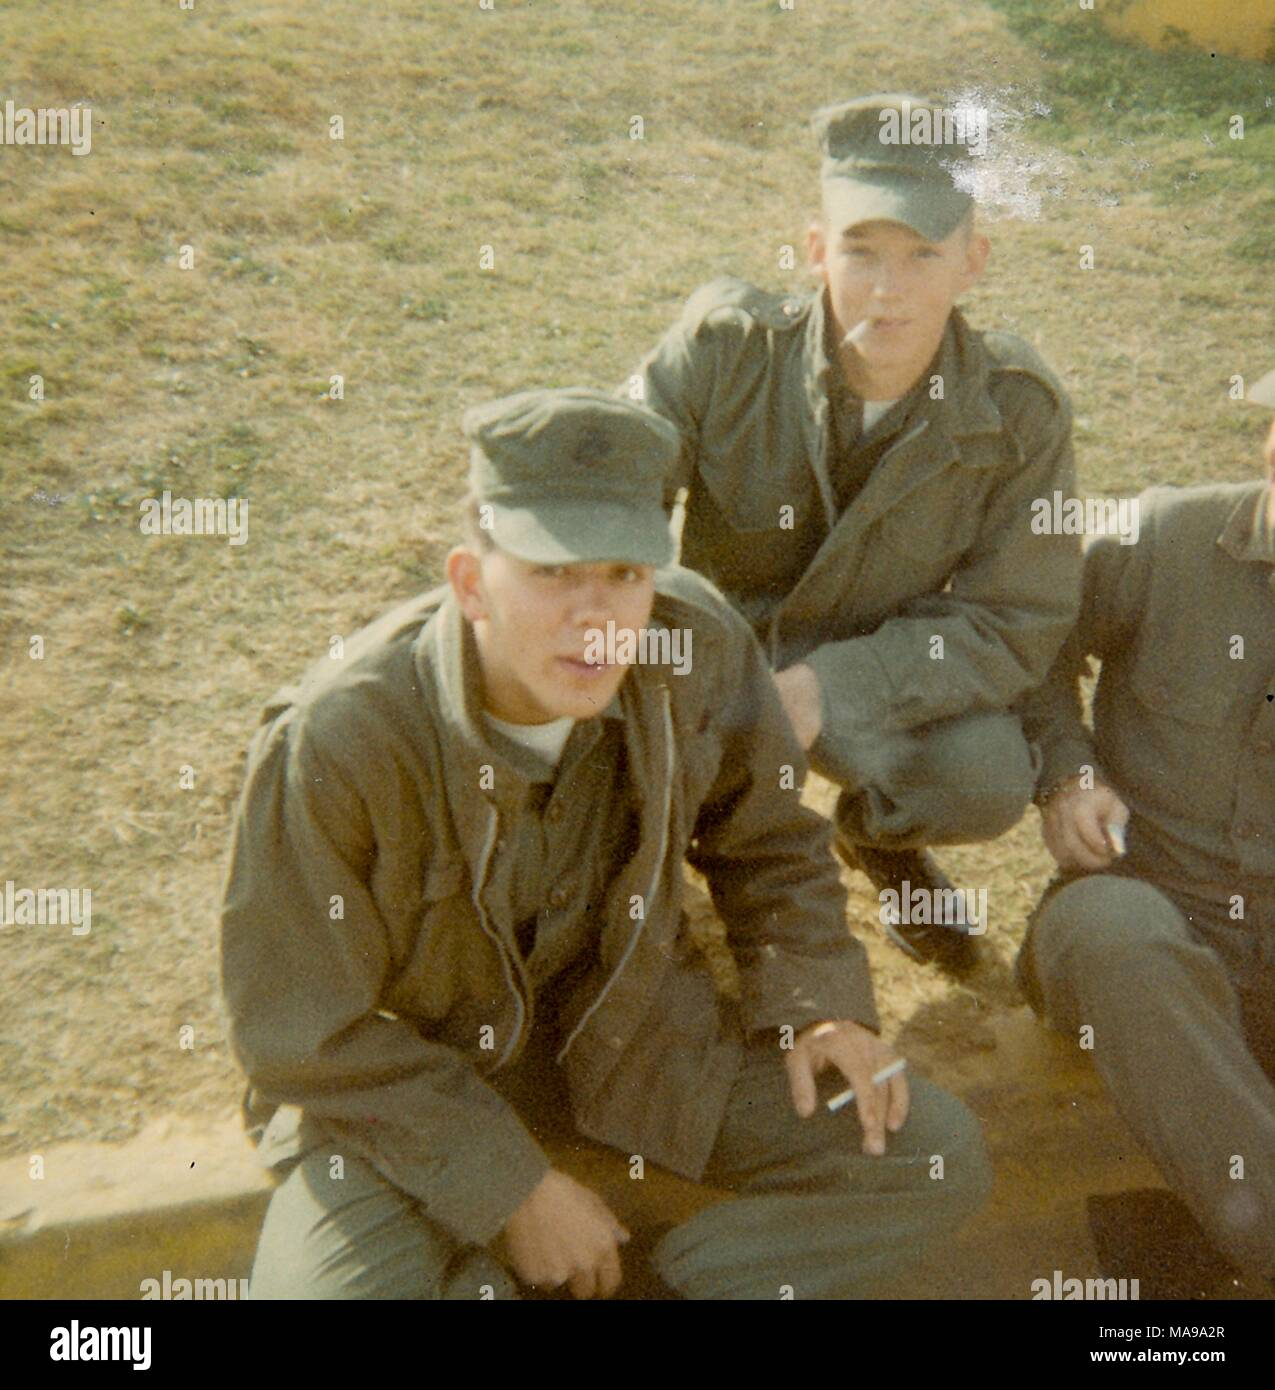 Vietnam War Hat Stock Photos & Vietnam War Hat Stock Images - Alamy